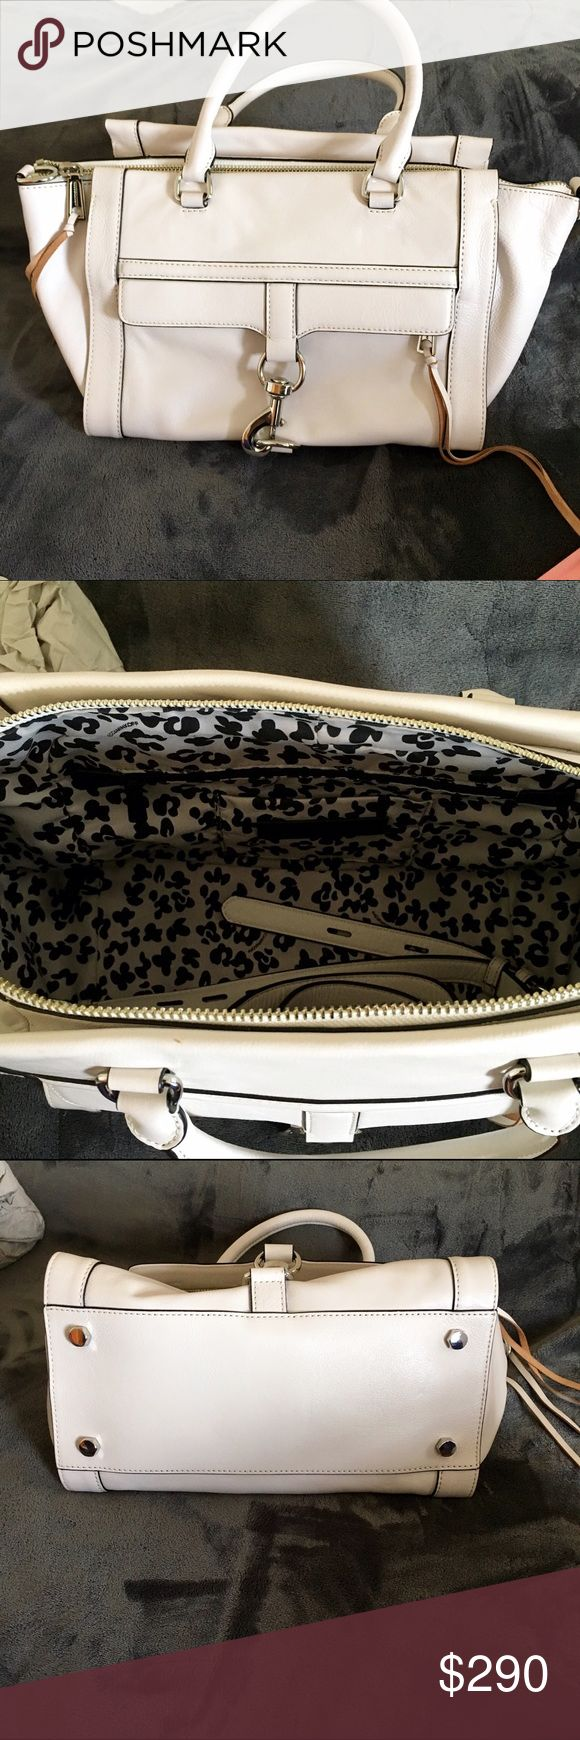 """Rebecca Minkoff 'Bowery' Satchel Fashion classics Bowery Satchel Blanco. In brand new condition. It hasn't left my closet. Looks small but is very roomy. The tiniest scuff on the top. Otherwise in brand new condition. 12""""W x 8.5""""H x 7""""D Rebecca Minkoff Bags Satchels"""